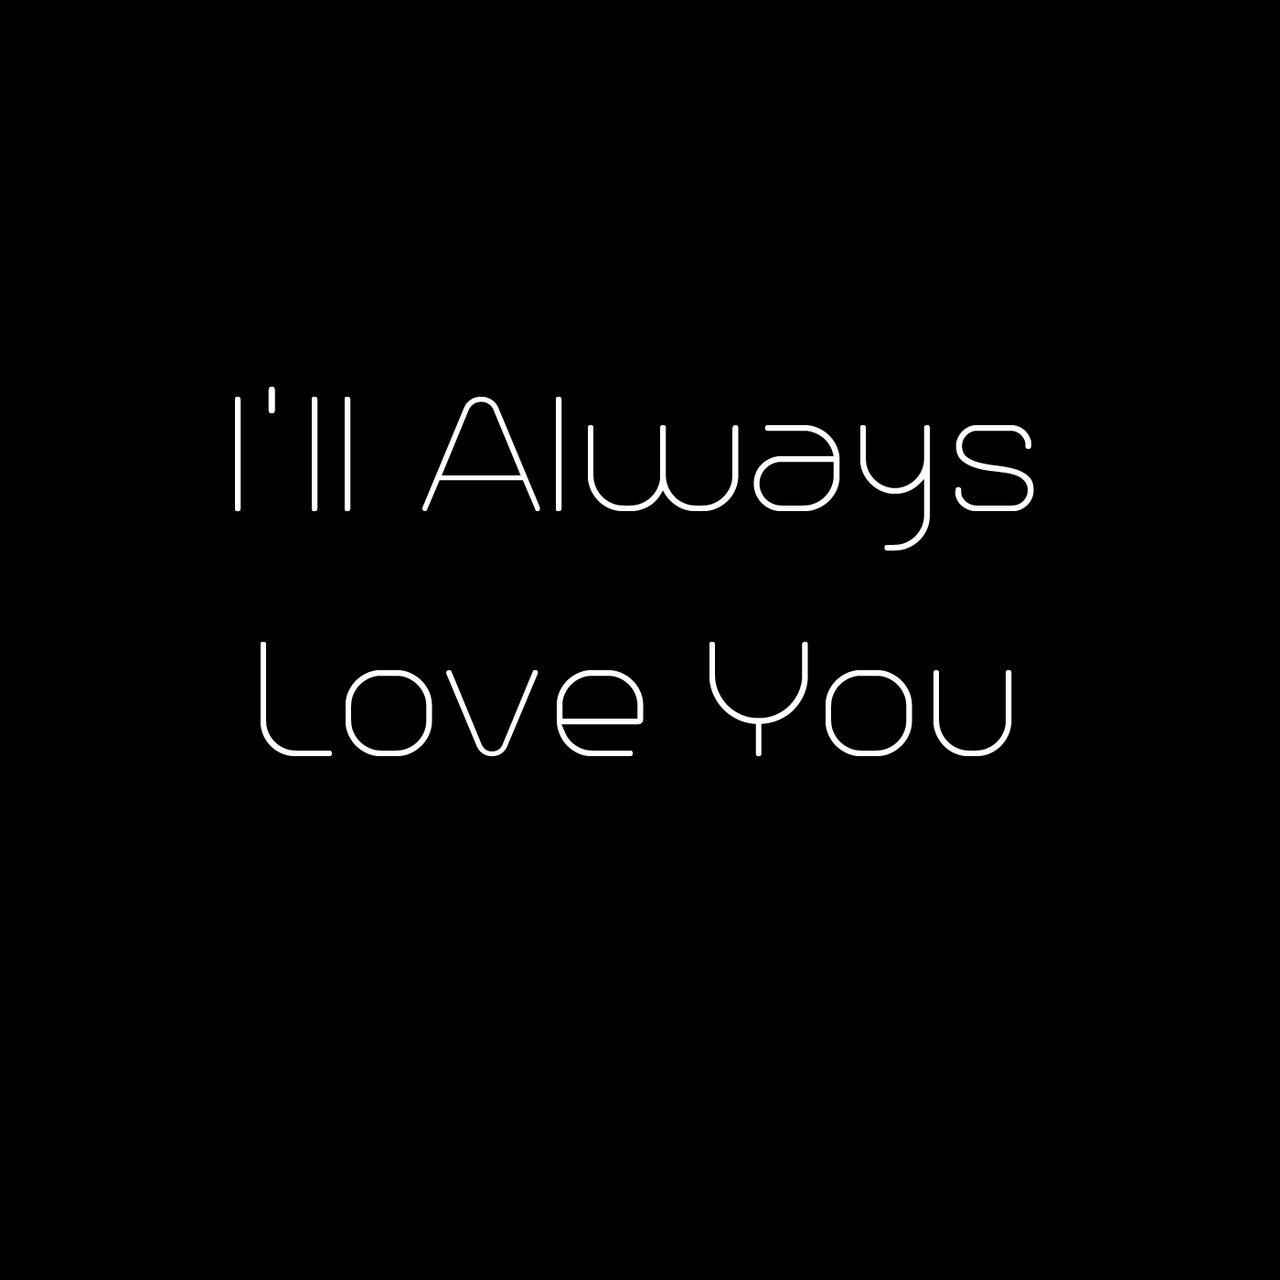 I'll Always Love You